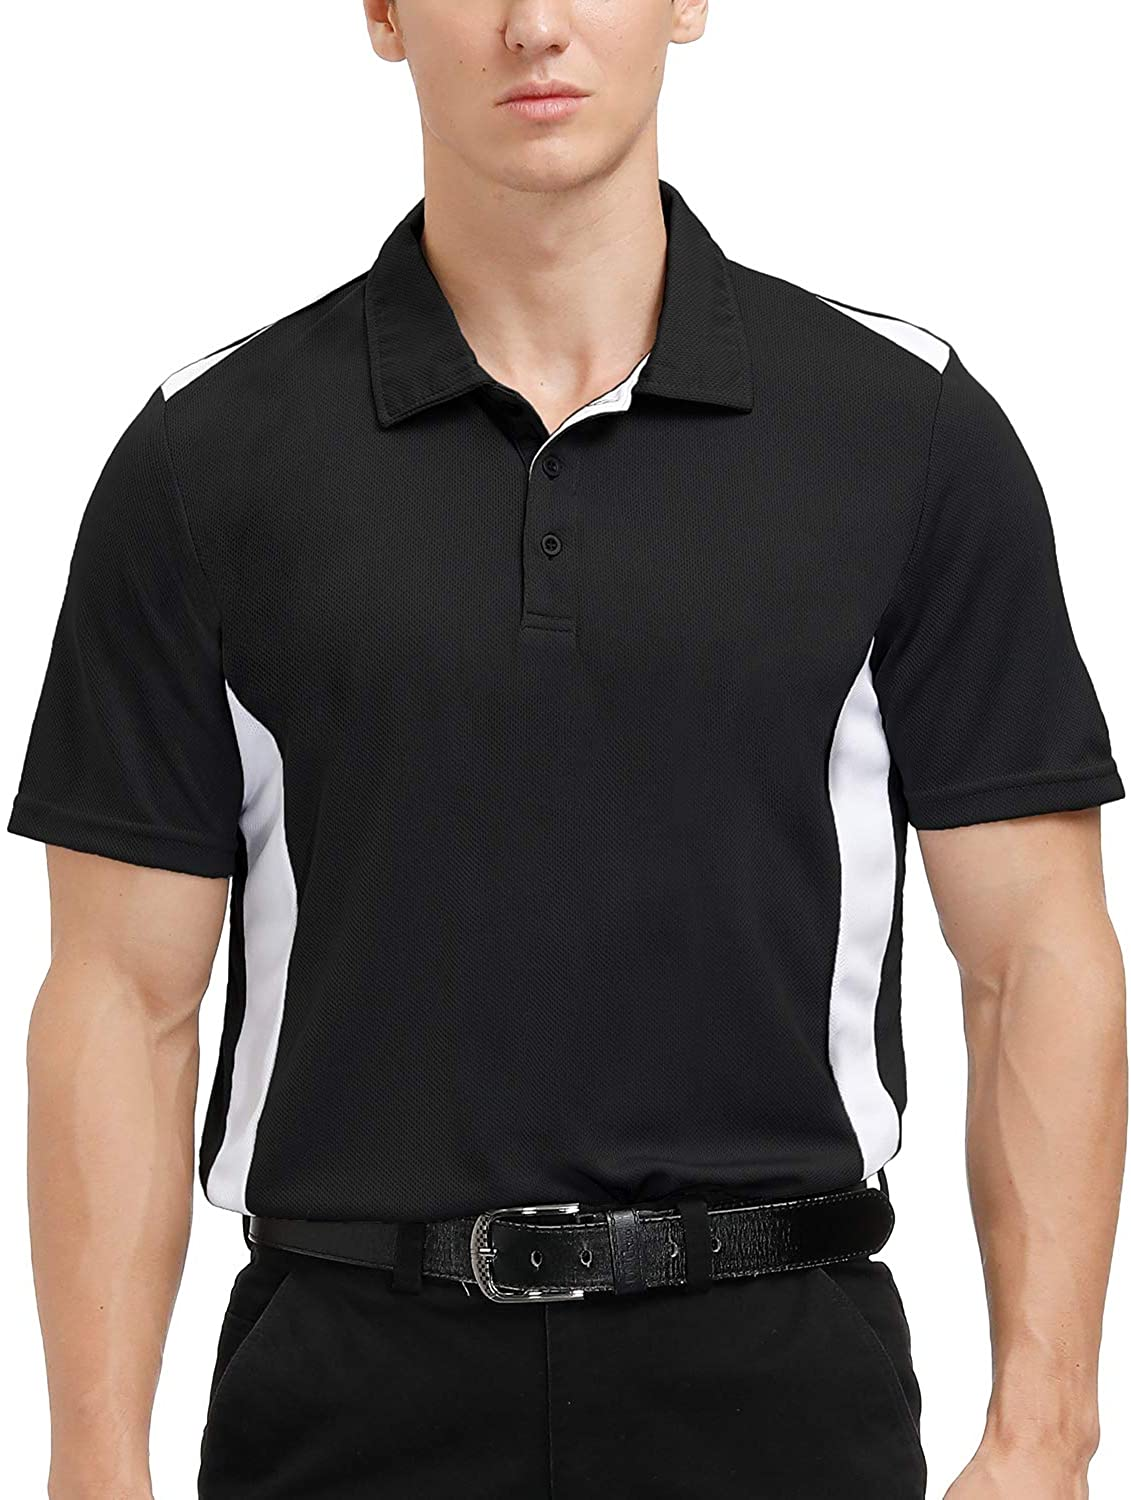 MOHEEN Men's Short Sleeve Polo Shirt Moisture Wicking Performance Classic Cut Athletic Casual Golf Shirts: Clothing